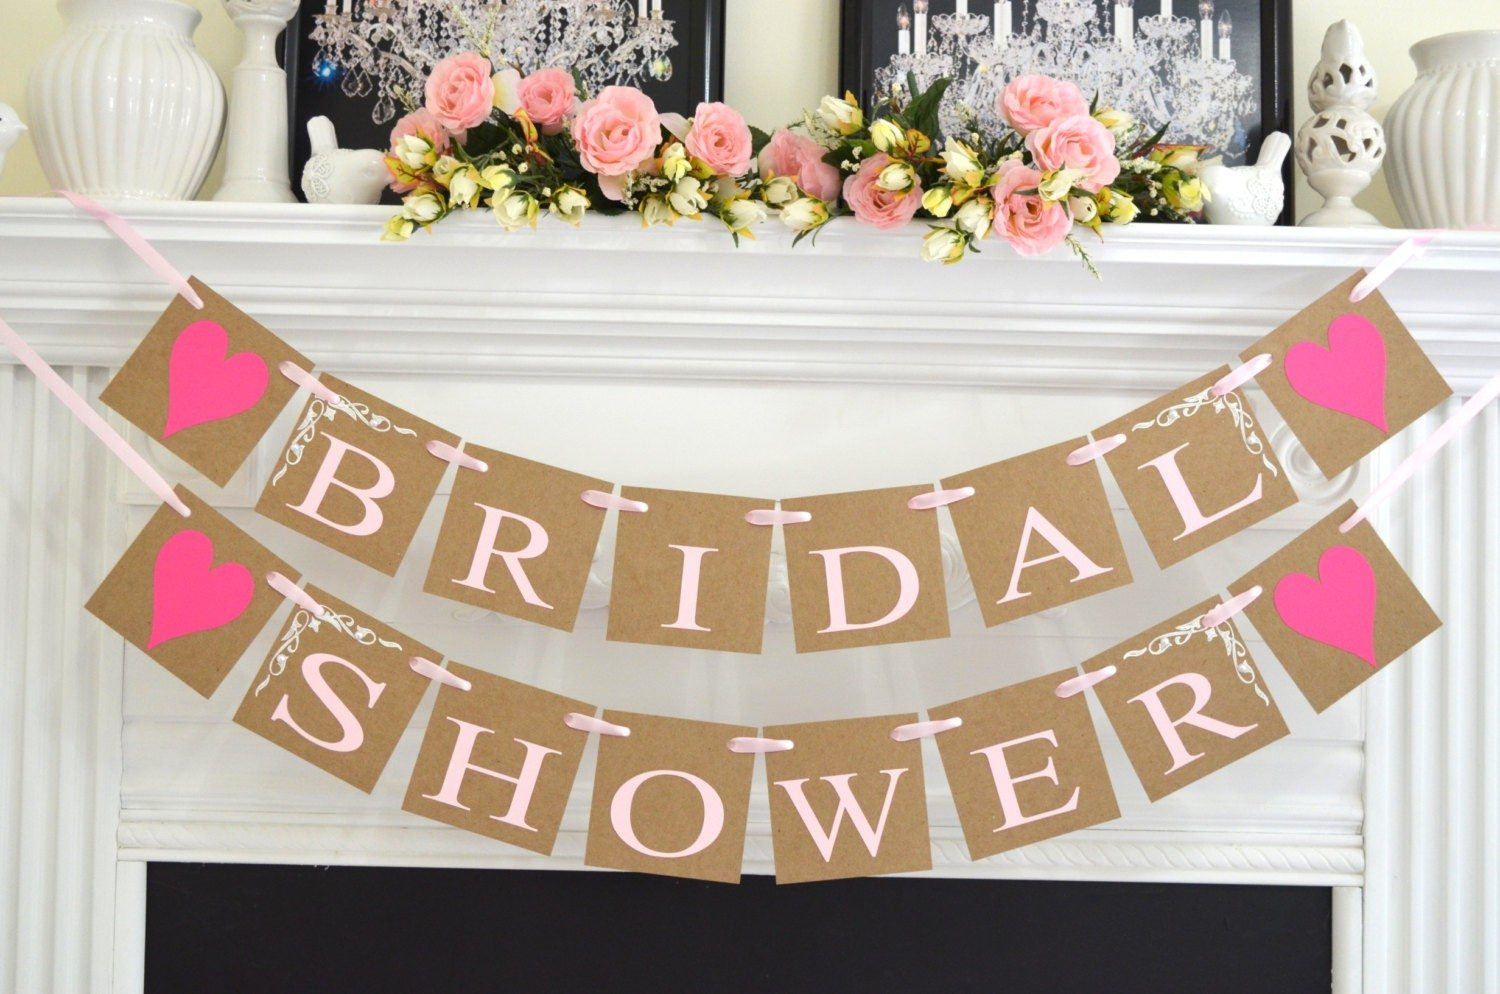 bridal shower ideas 10 inspiring ideas for the chic bride